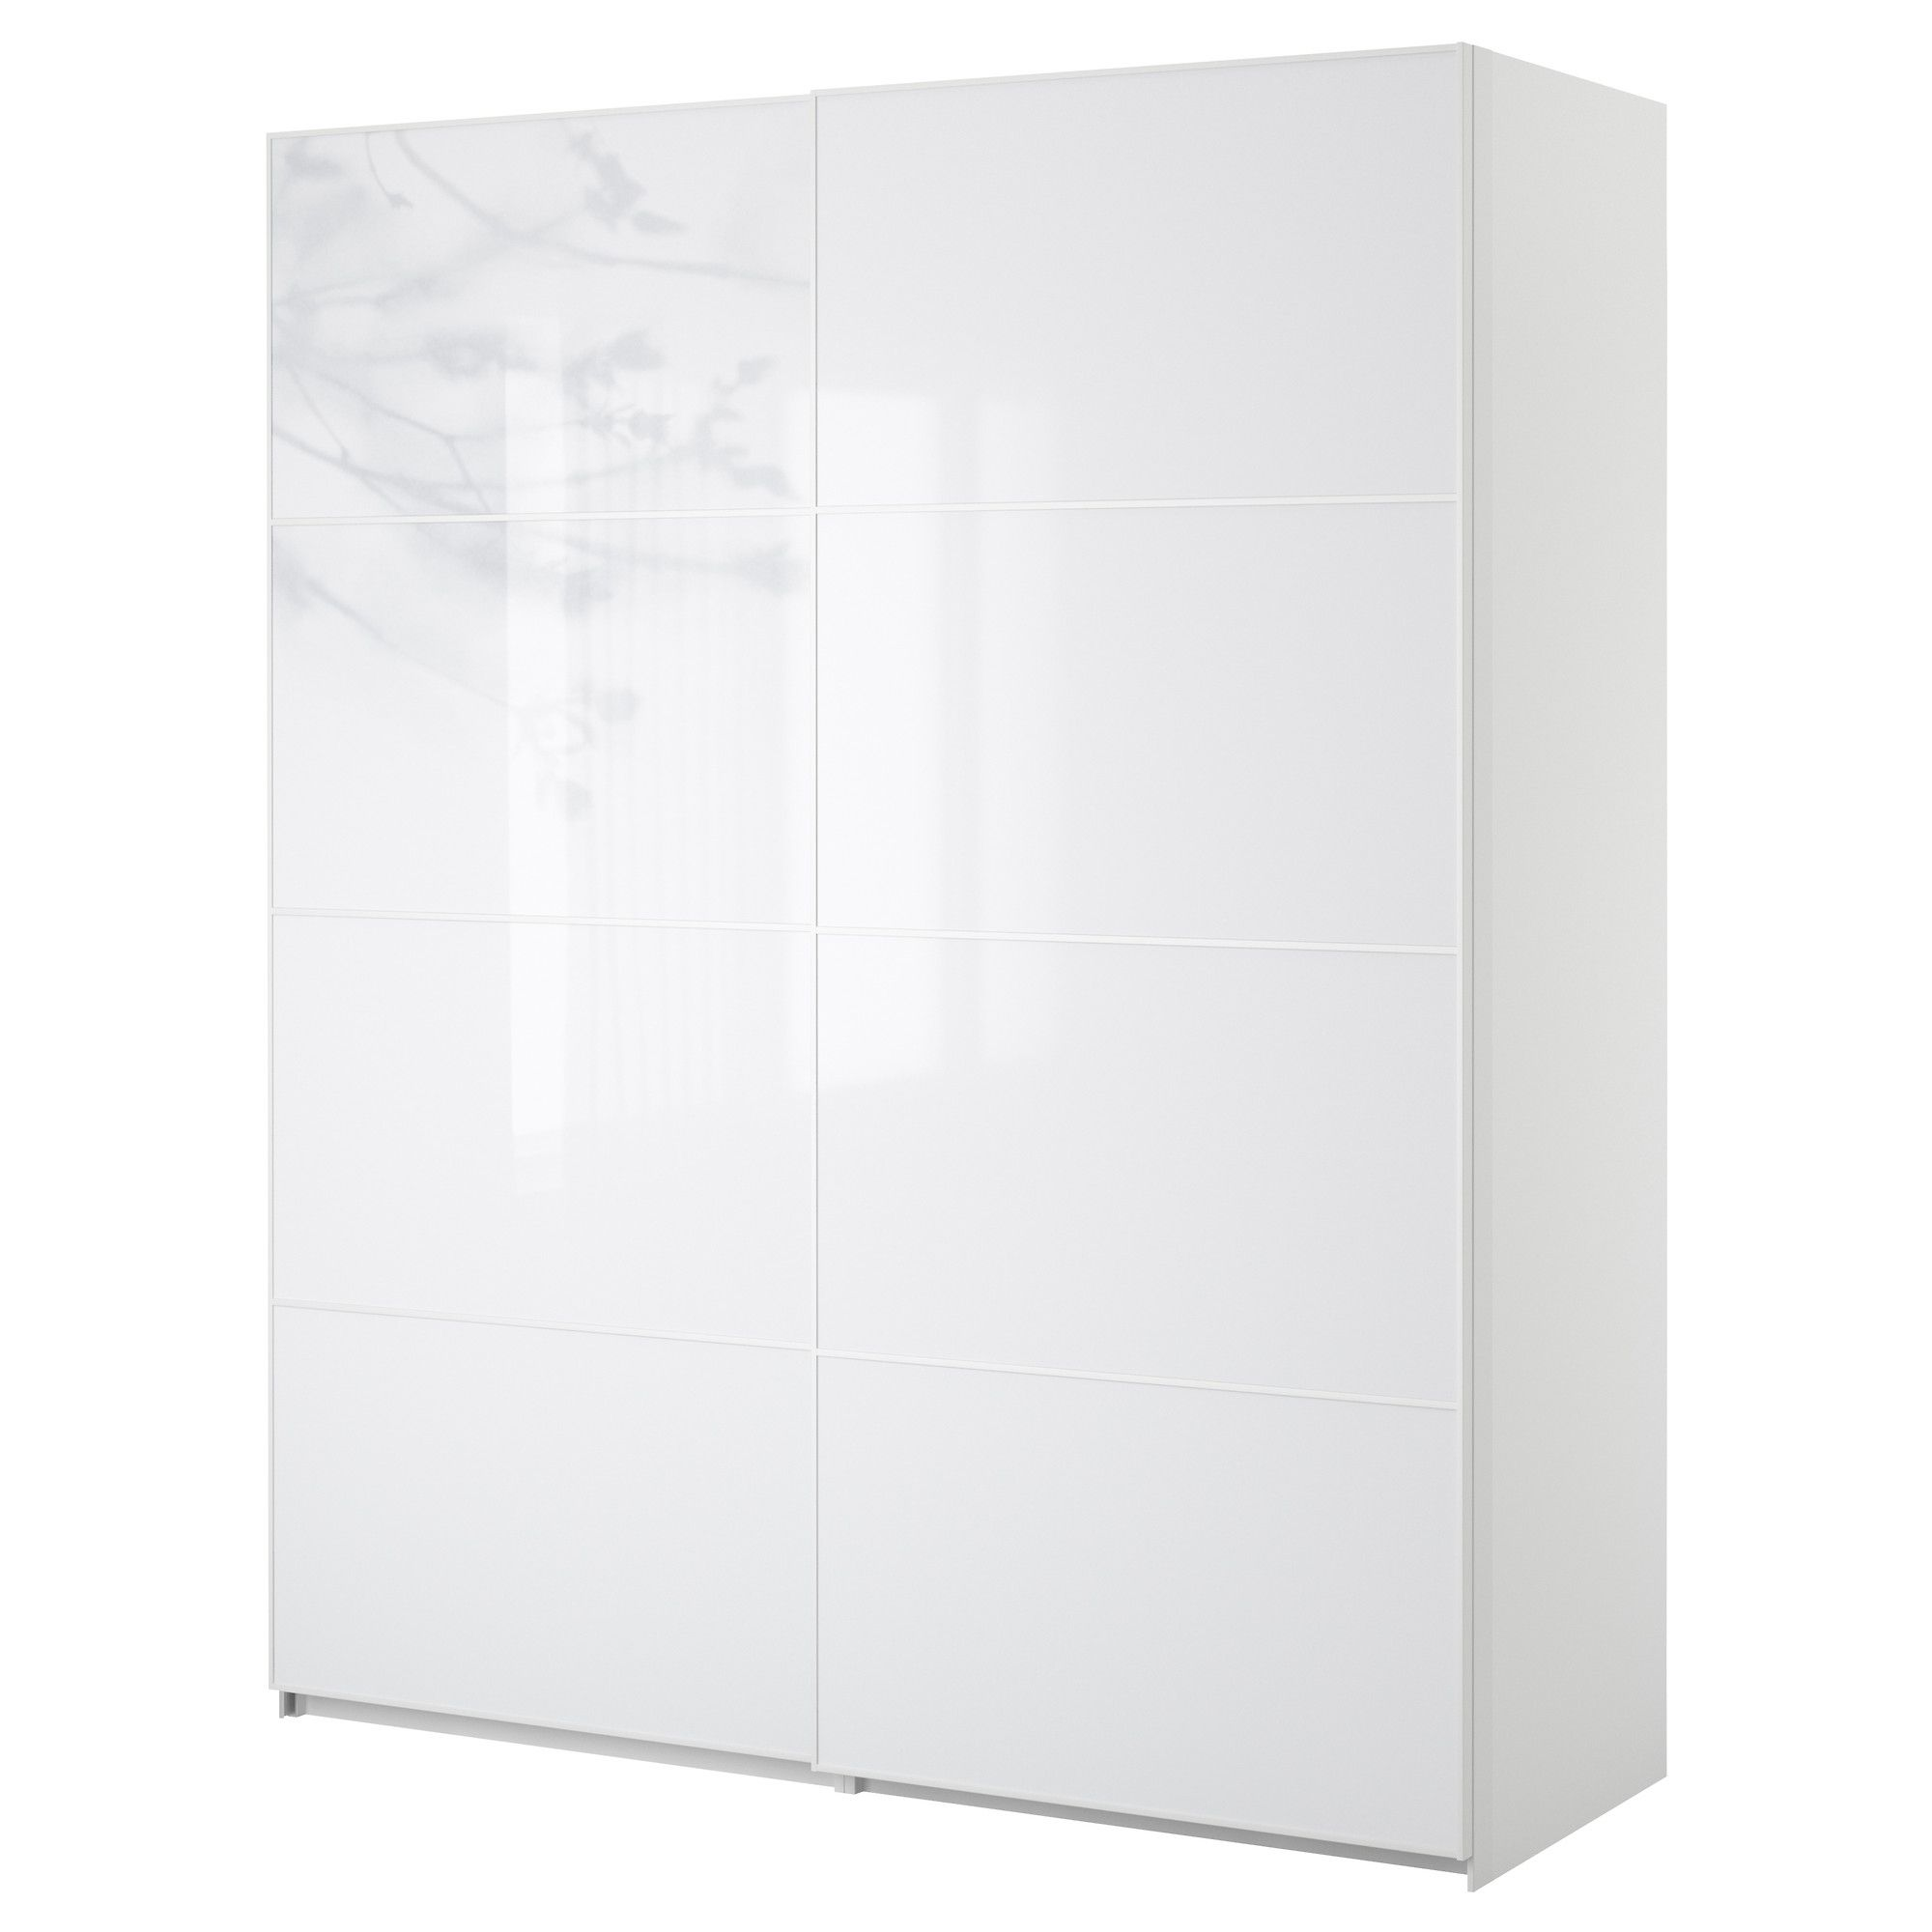 White pax wardrobe with sliding doors possible major room accent building on the wood stone shelf accent wall idea sliding doors demand less space